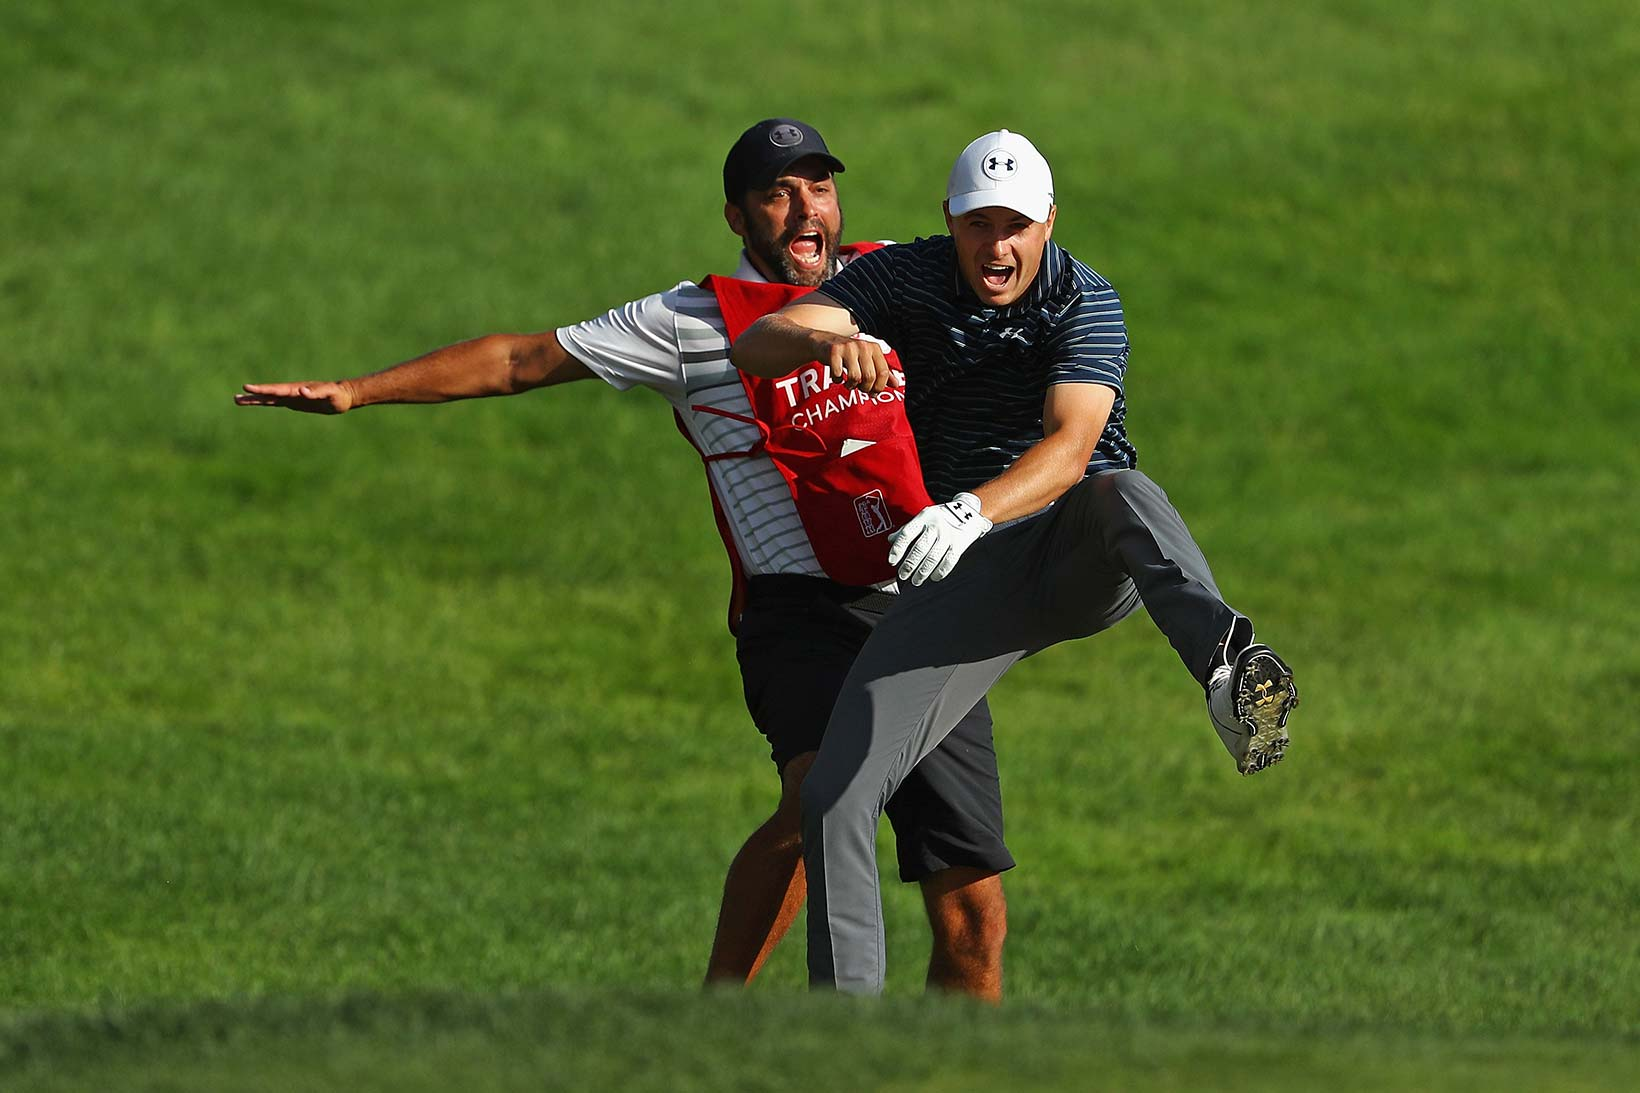 2017 Travelers Championship: Final Round - Chest Bumps